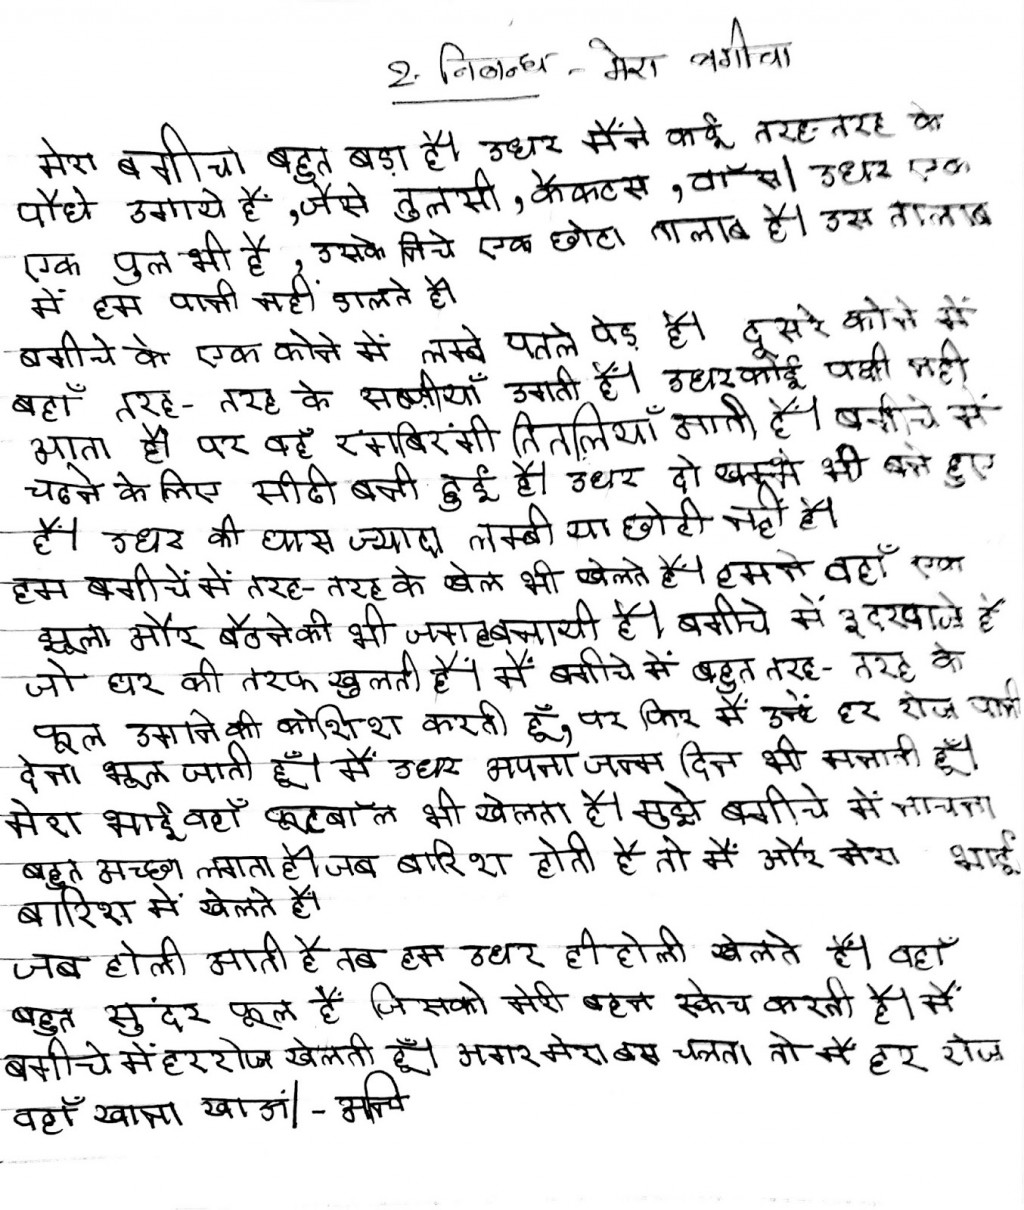 015 Essay On Garden Example Hindi Homework Writing Service Gard Stunning Gardening By Henk Gerritsen In Sanskrit Language Large